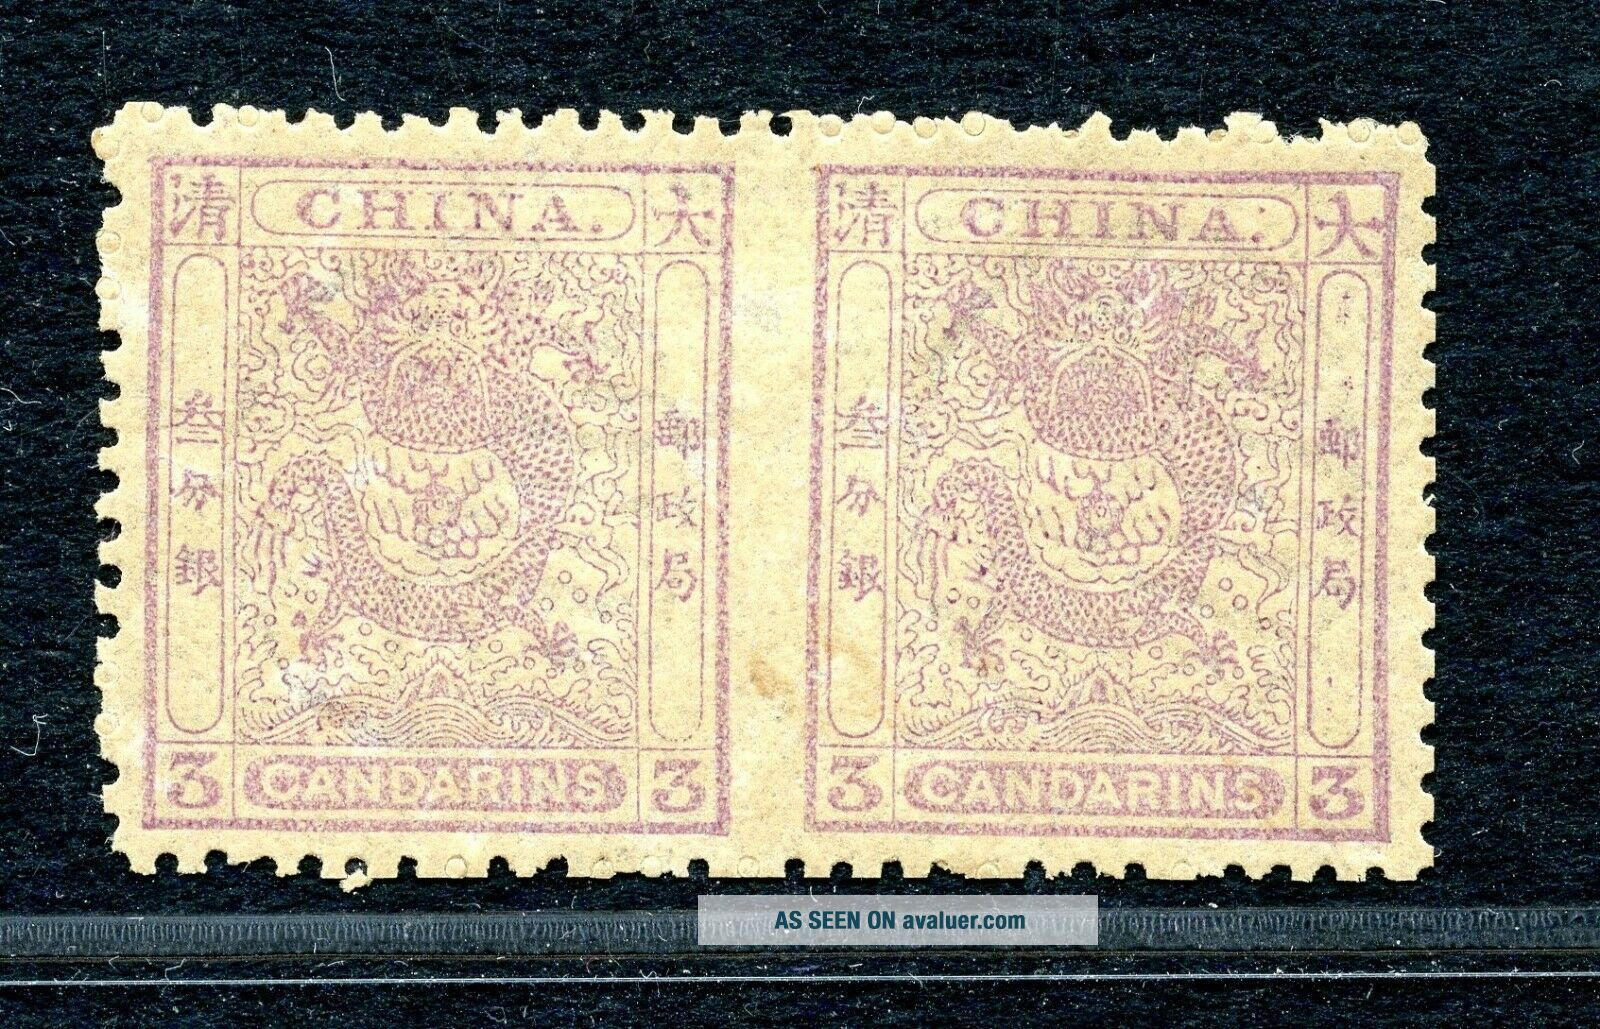 1185 Small Dragon 3cds horizontal pair imperforate between Chan 17a RARE